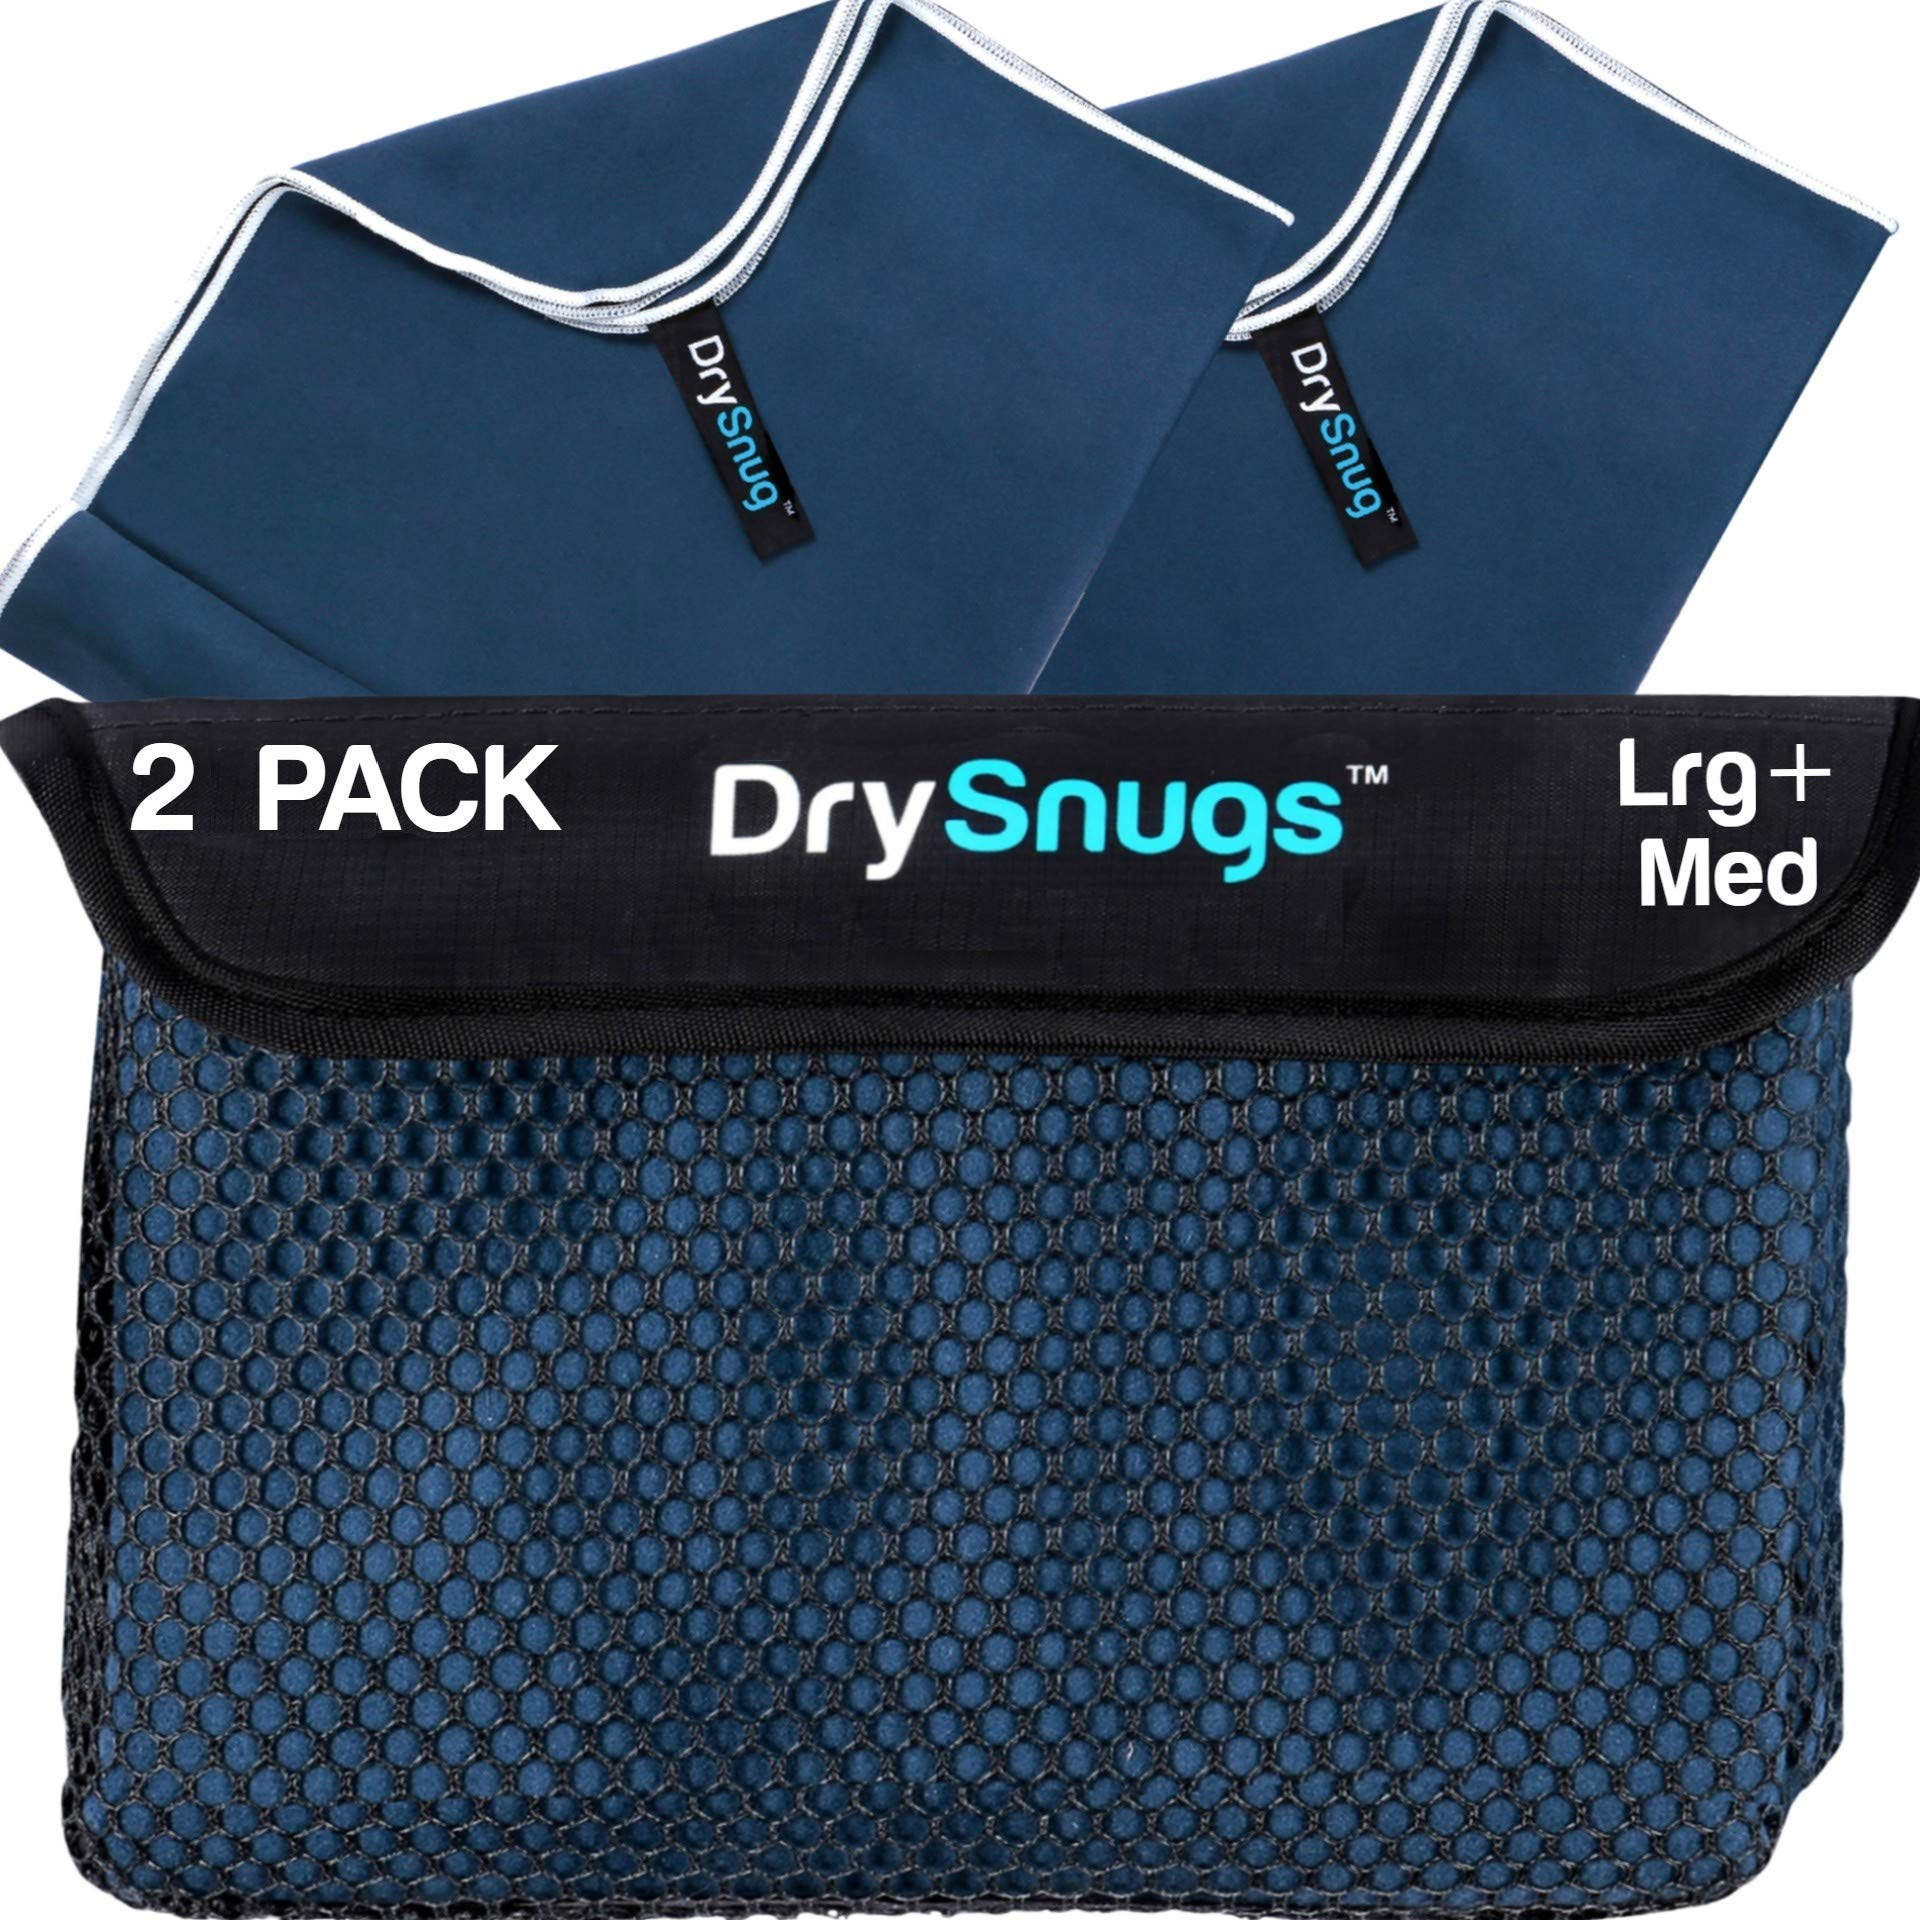 Large Compact Towels, Same Price as Small - The Perfect Microfiber Towel, Camping Towel, Sports Towel, Travel Towel, Microfiber Beach Towel, Gym Towel, Microfiber Towels for Body